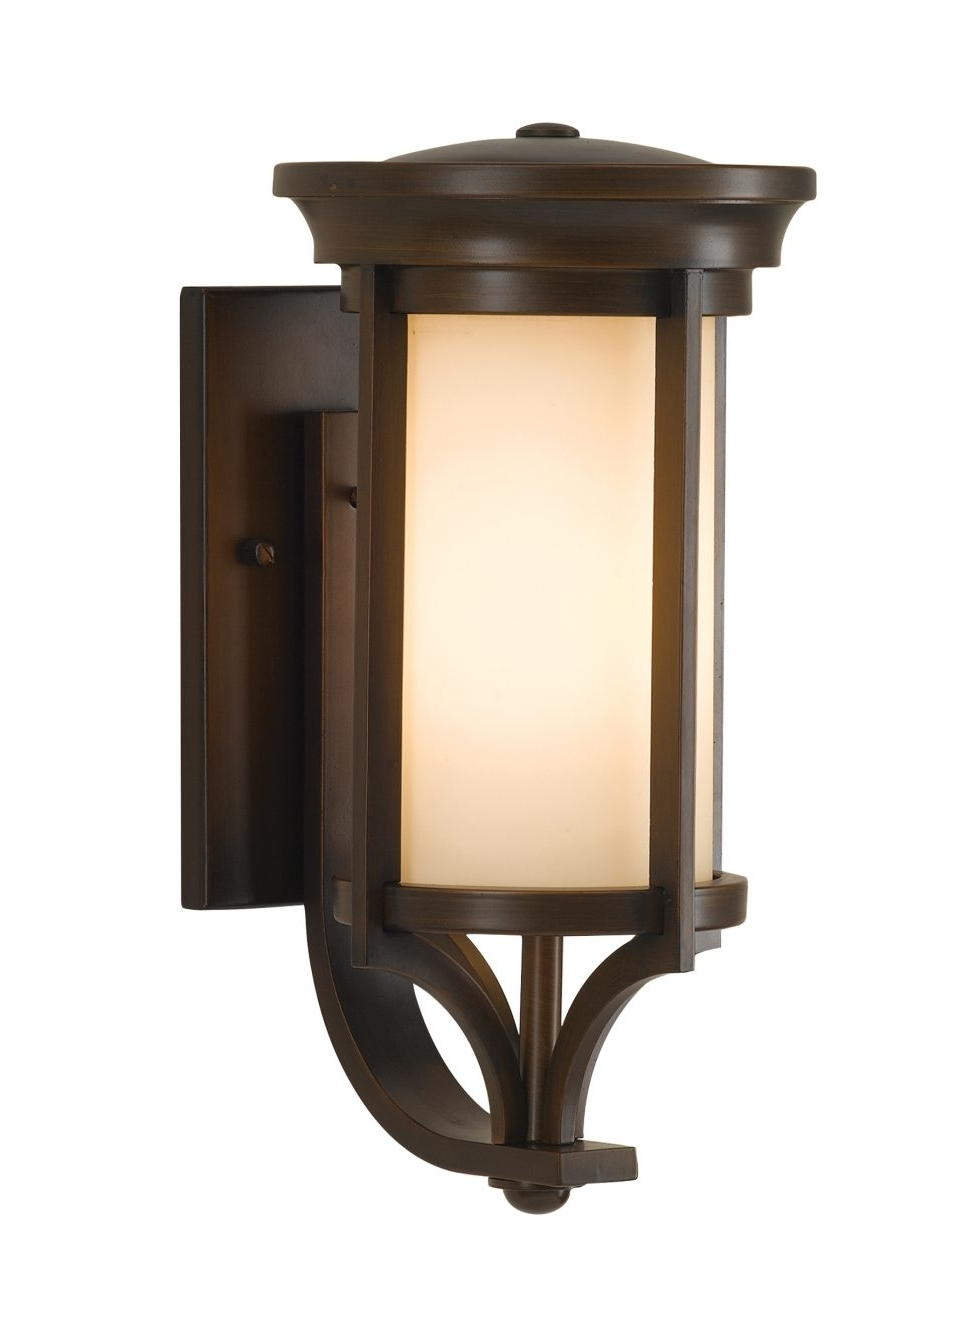 Favorite Outdoor Ceiling Light With Electrical Outlet With Electrical Wiring : Guiding Outdoor Ceiling Light Fixture With (View 12 of 20)